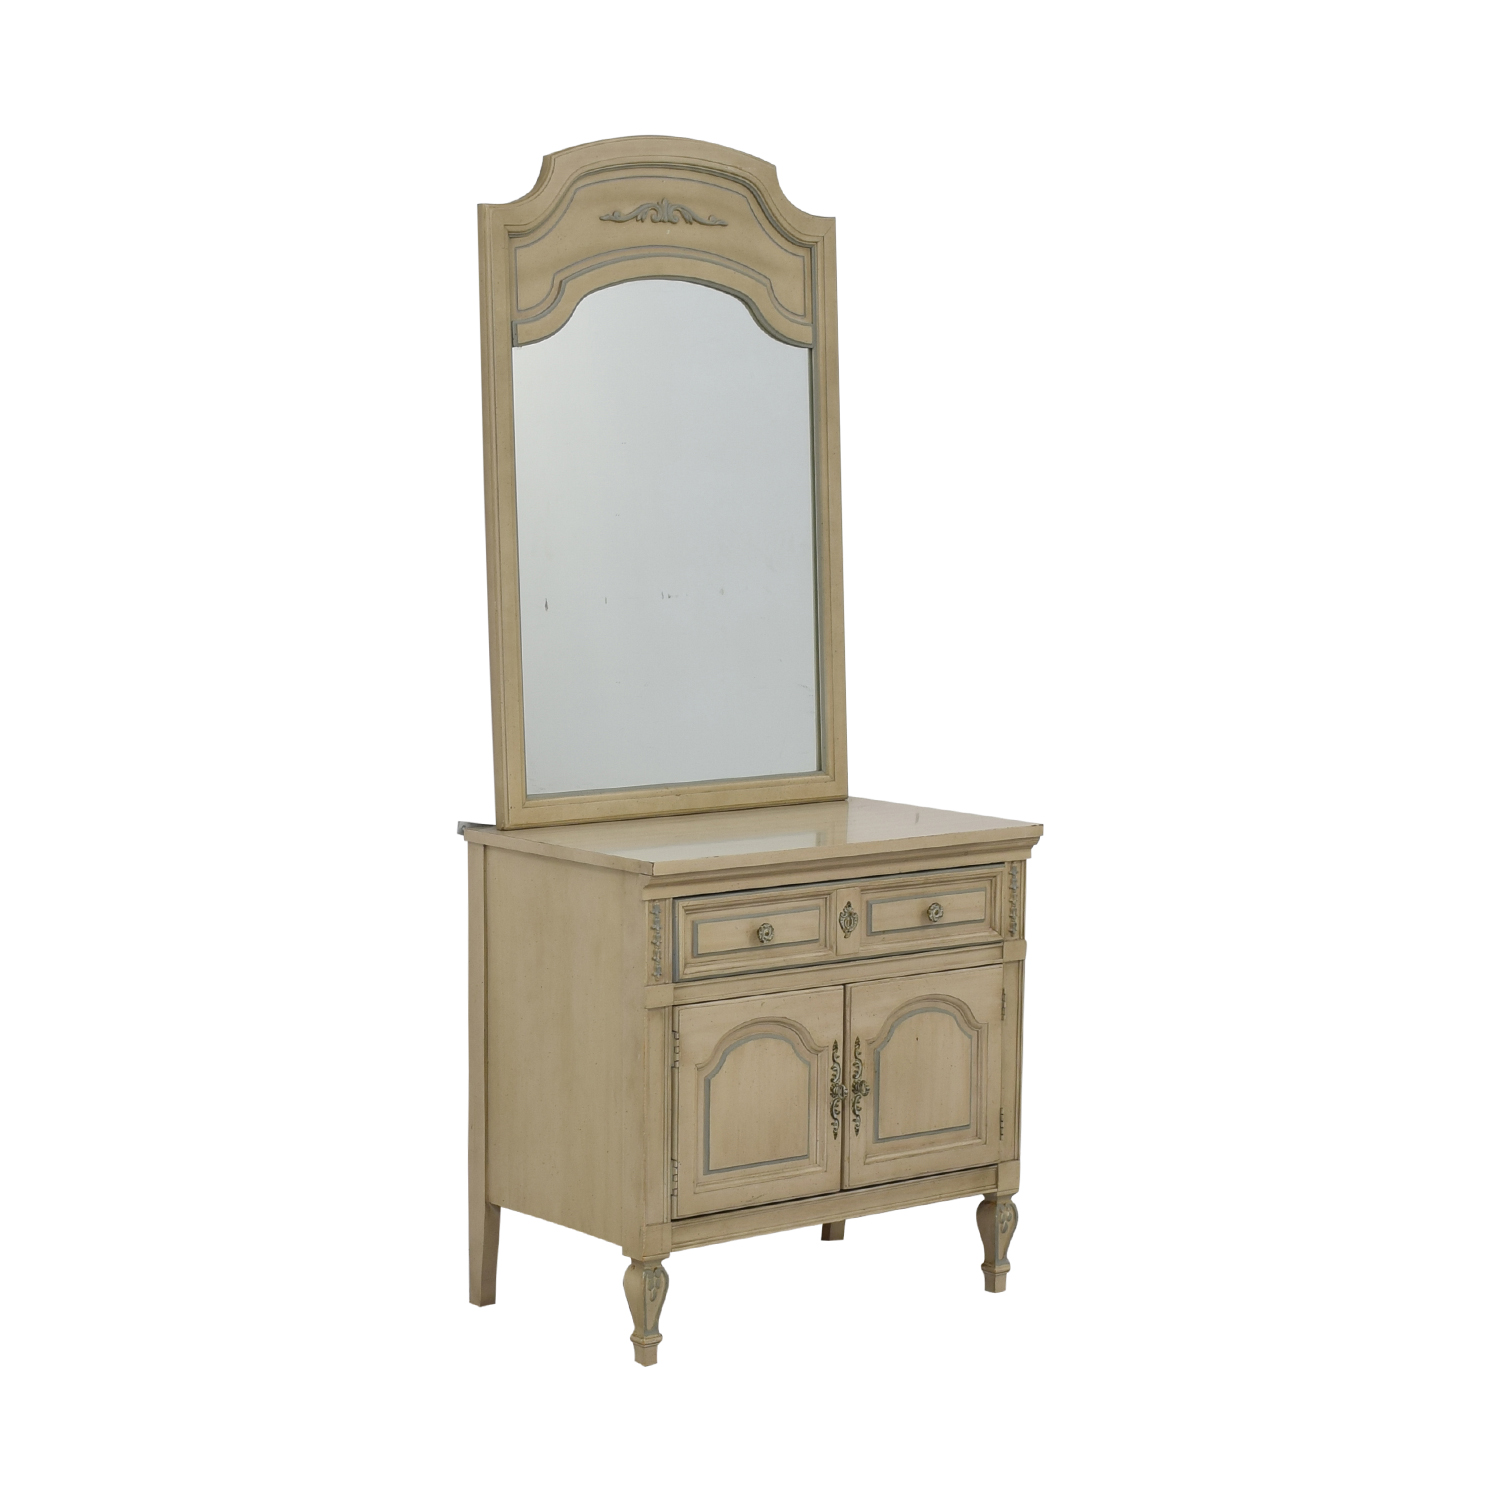 Dixie Furniture Company Dixie Furniture Chest with Mirror nj